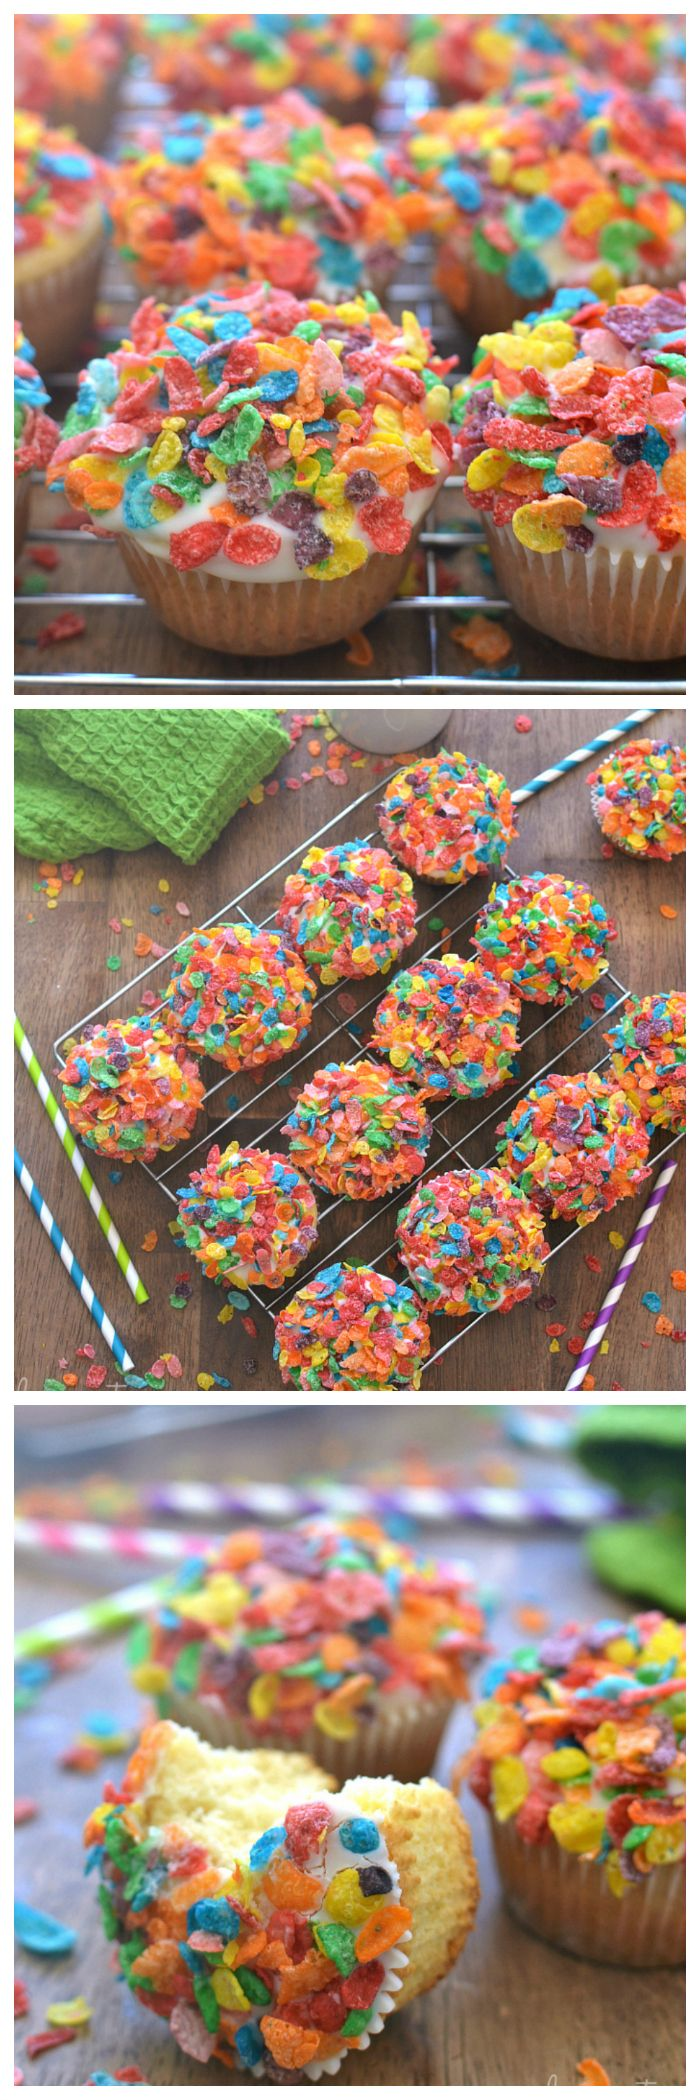 Fruity Pebbles Muffins